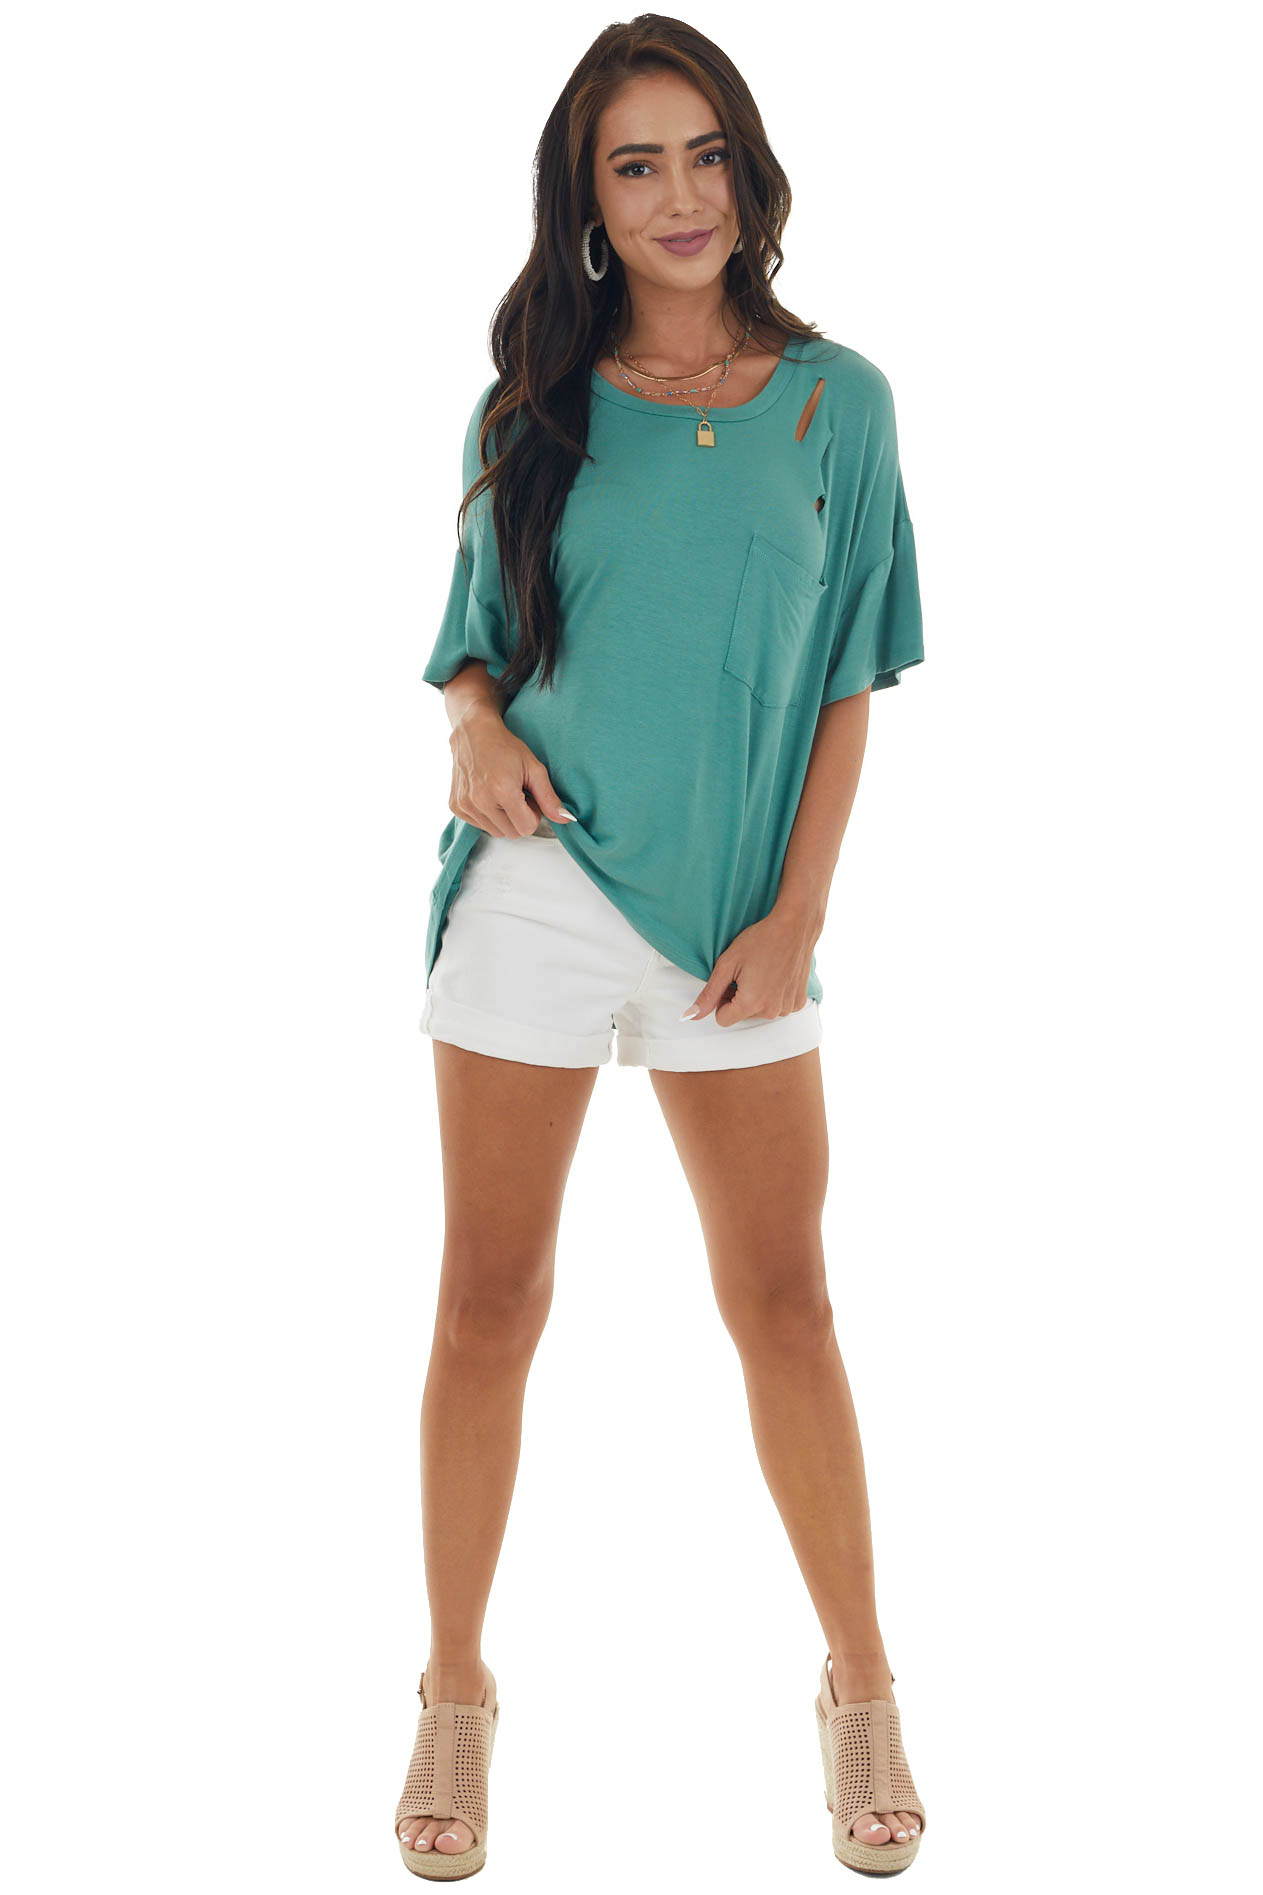 Faded Jade Cut Out Soft Knit Tee with Pocket